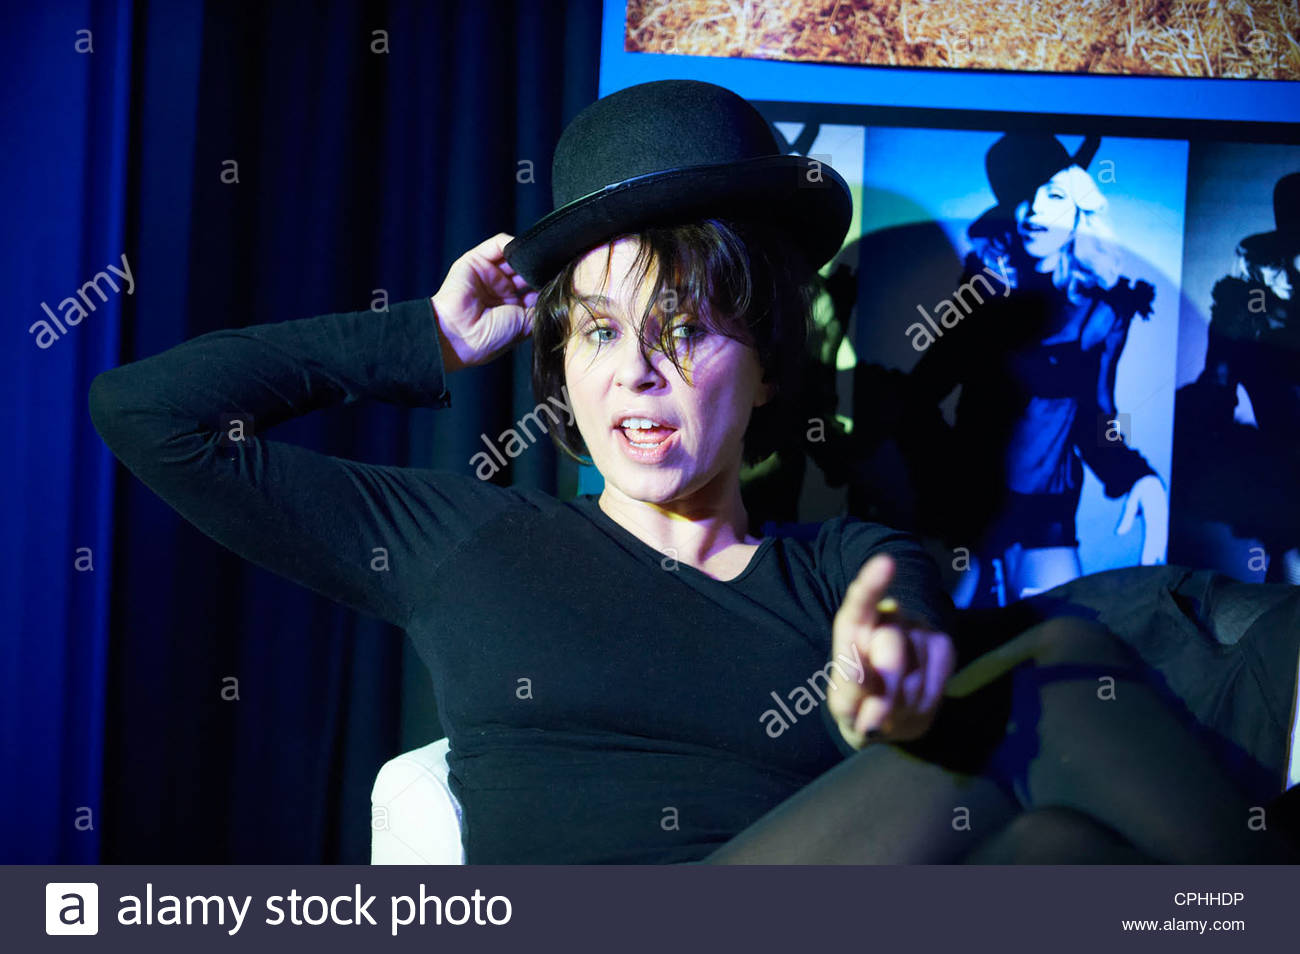 Touched Like A Virgin by Zoe Lewis, directed by James Phillips. With Sadie Frost as Lesley. Opens at The Soho Theatre - Stock Image